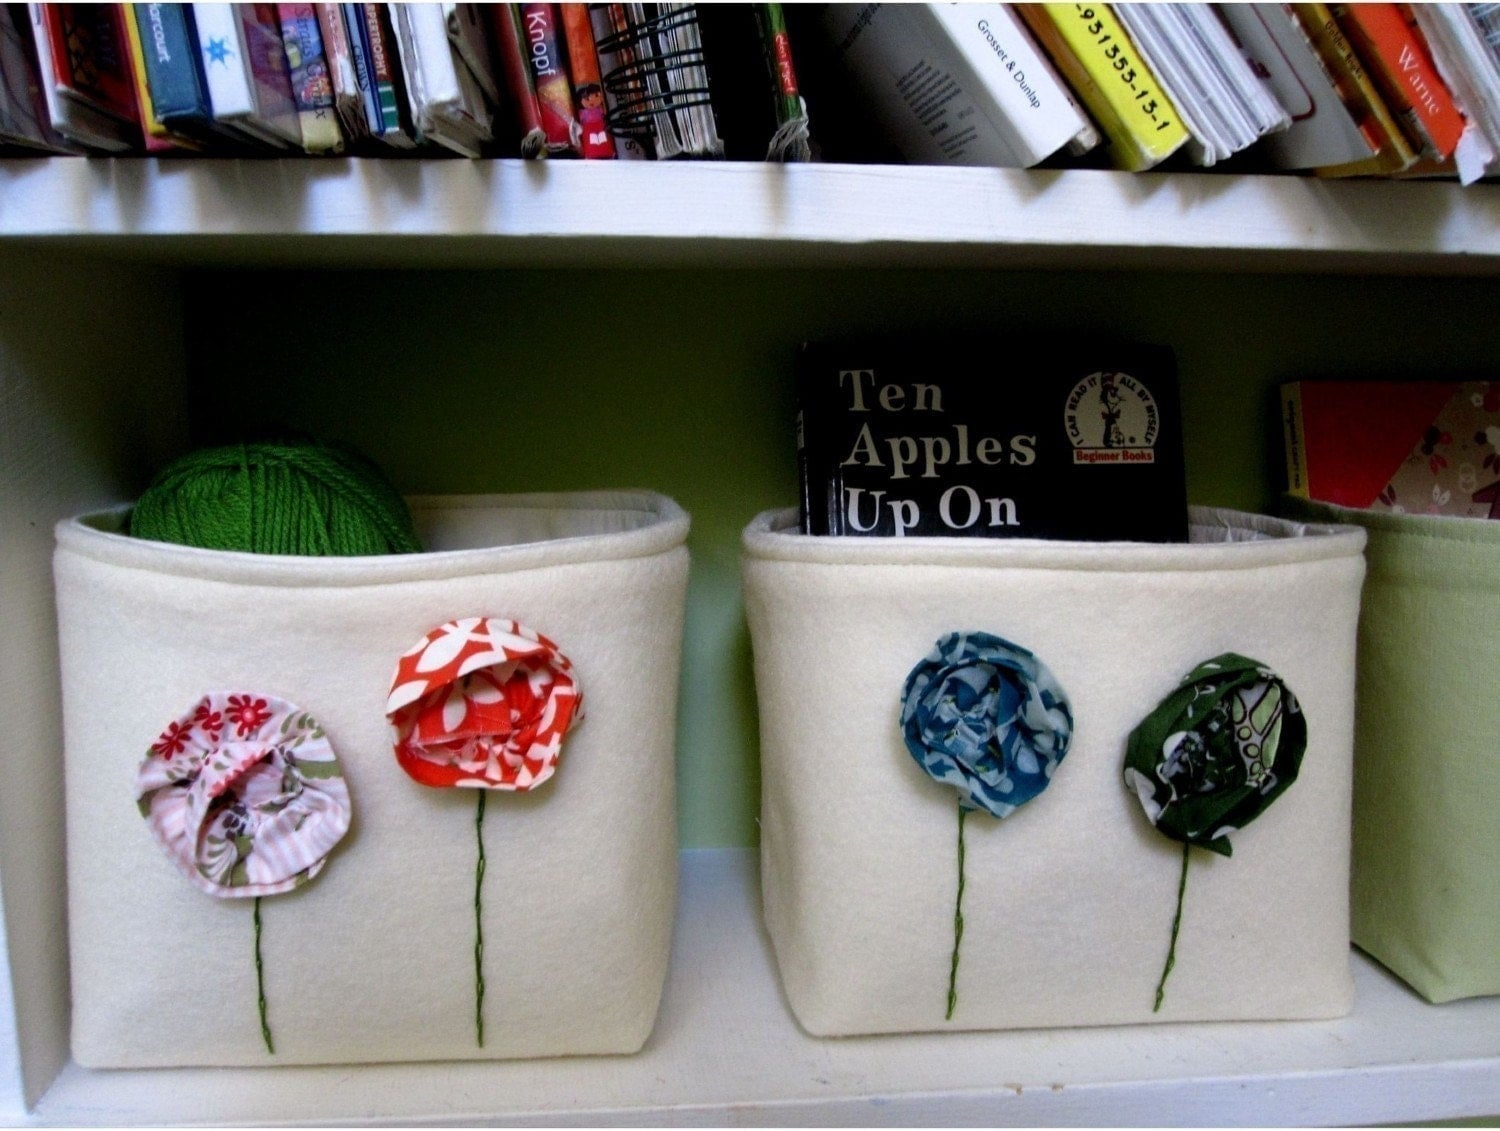 As Seen In Pregnancy and Newborn Magazine Bohemian Poppies Fabric Bins In Cream  Recycled Felt Fabric  With Flowers Set of Two Upcycled Book Ends